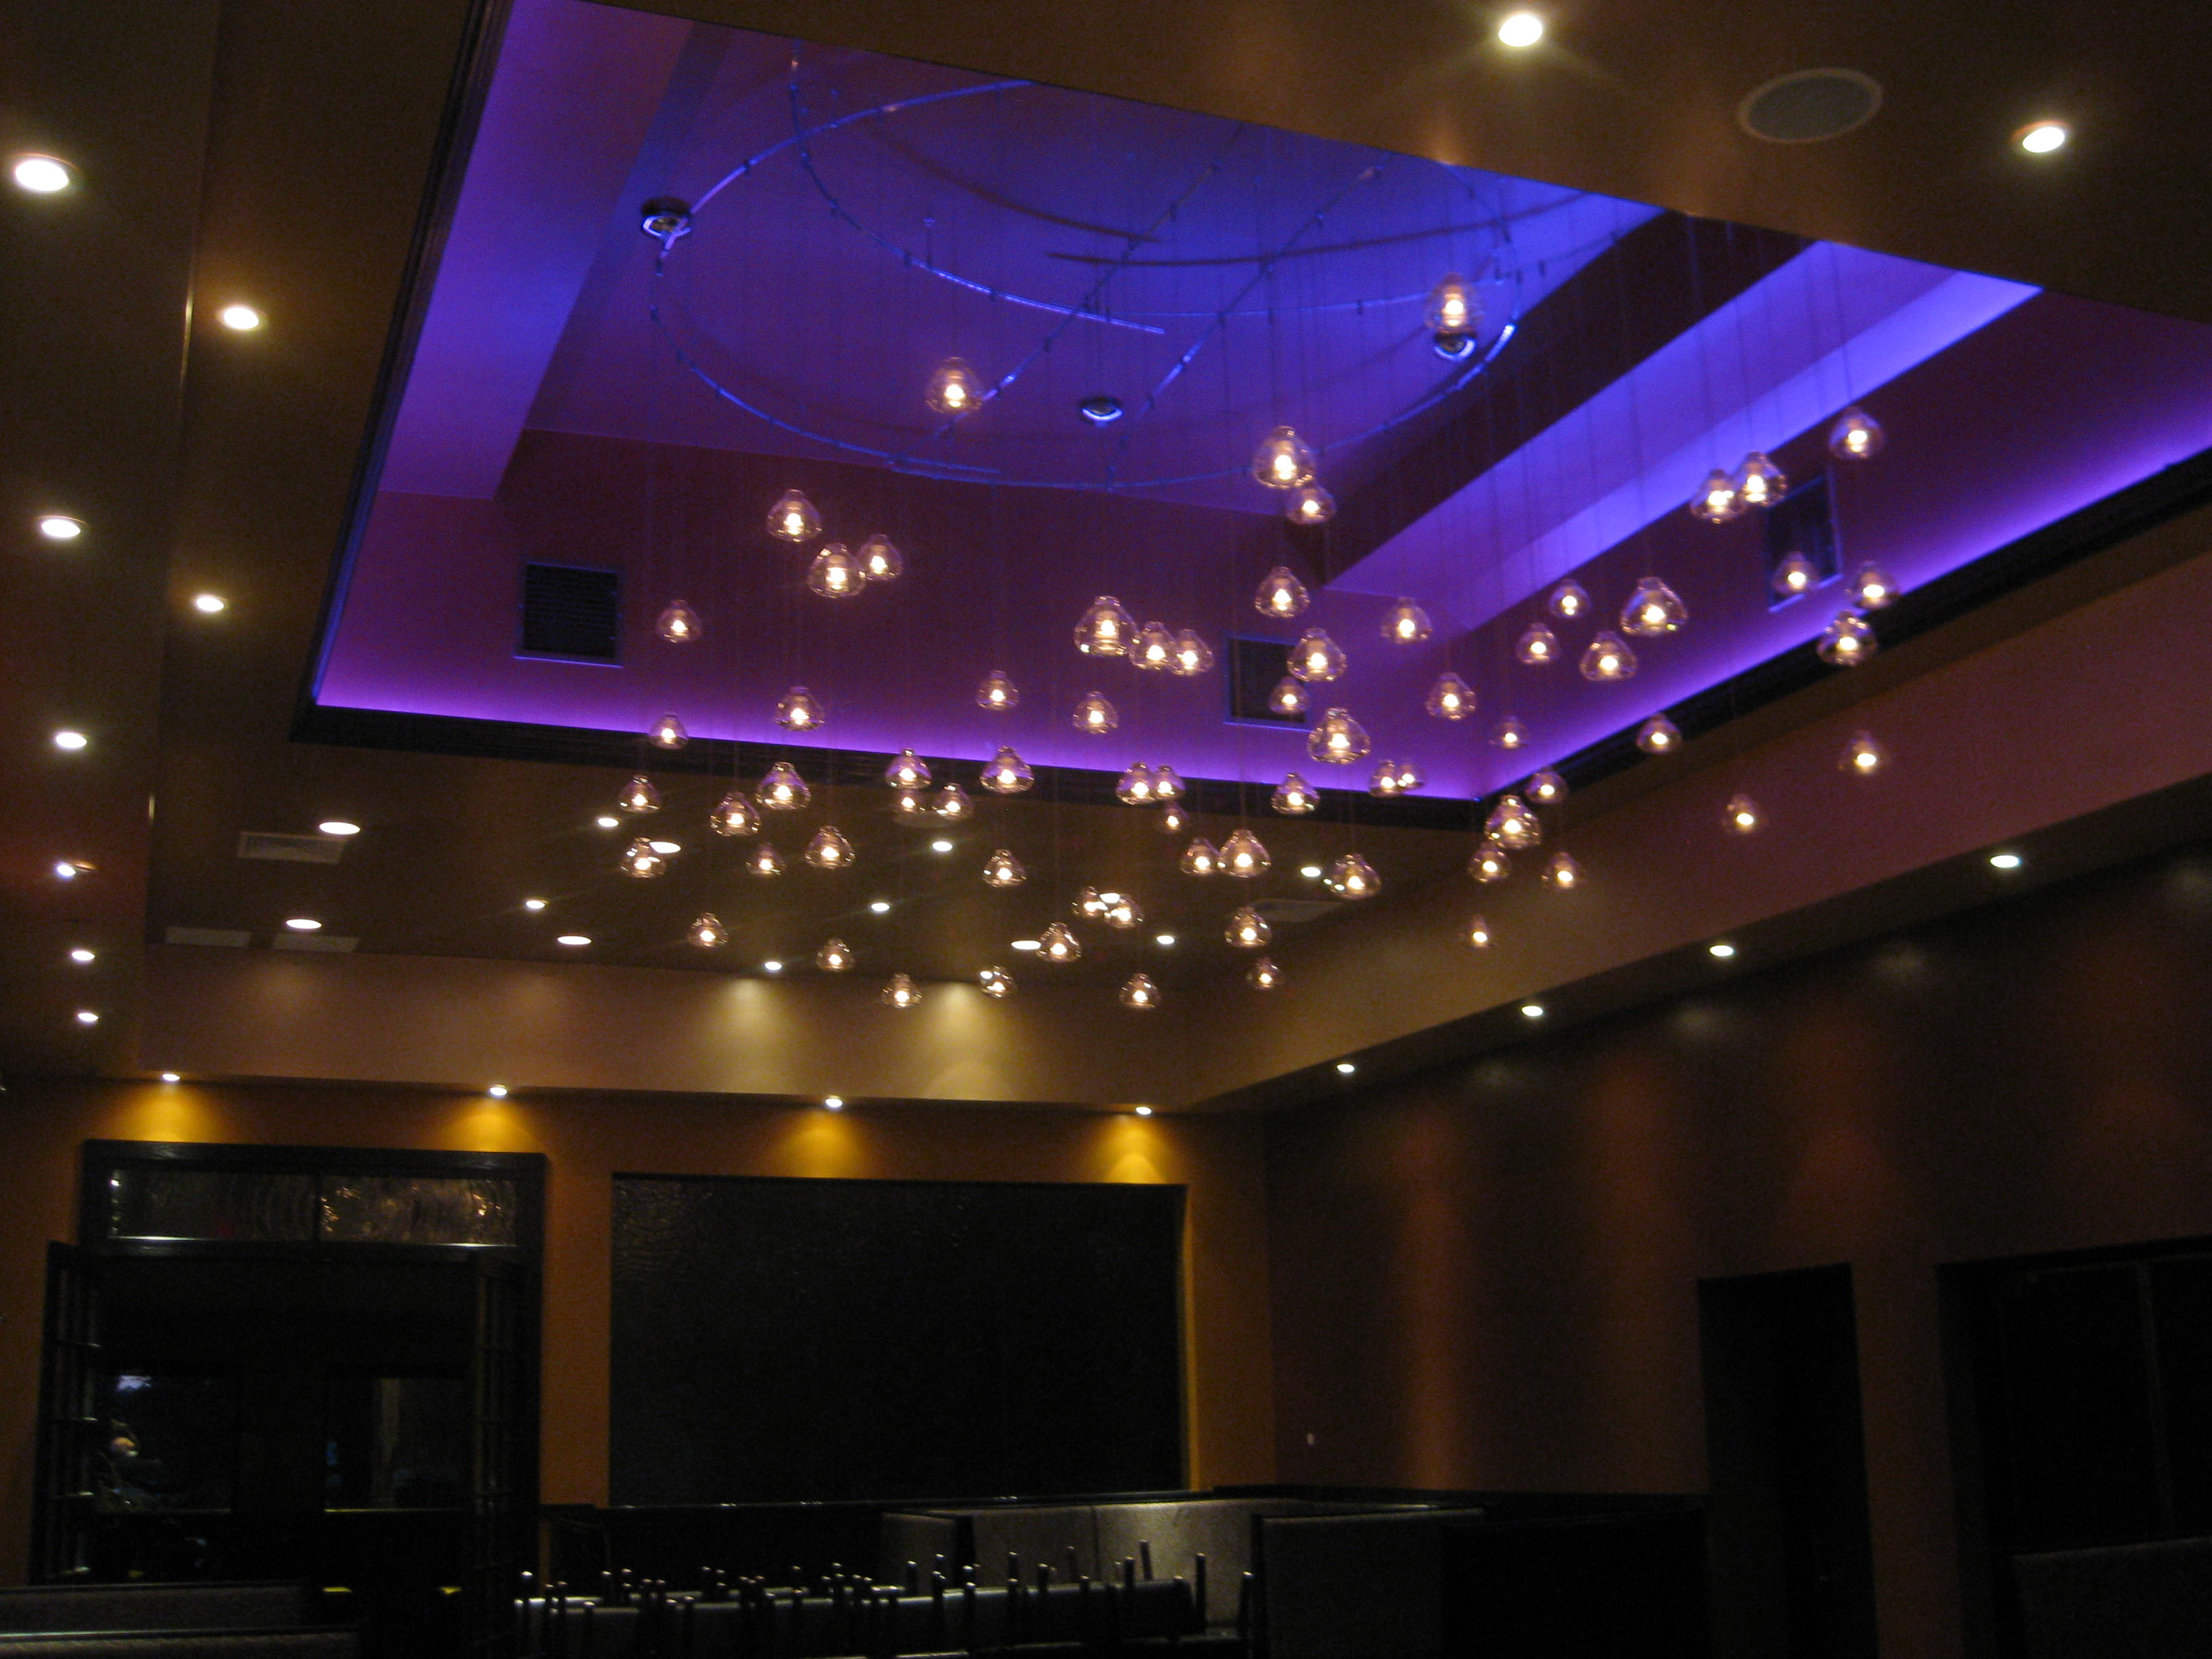 Promoting your business by restaurant ceiling lights warisan restaurant ceiling lights photo 1 mozeypictures Gallery